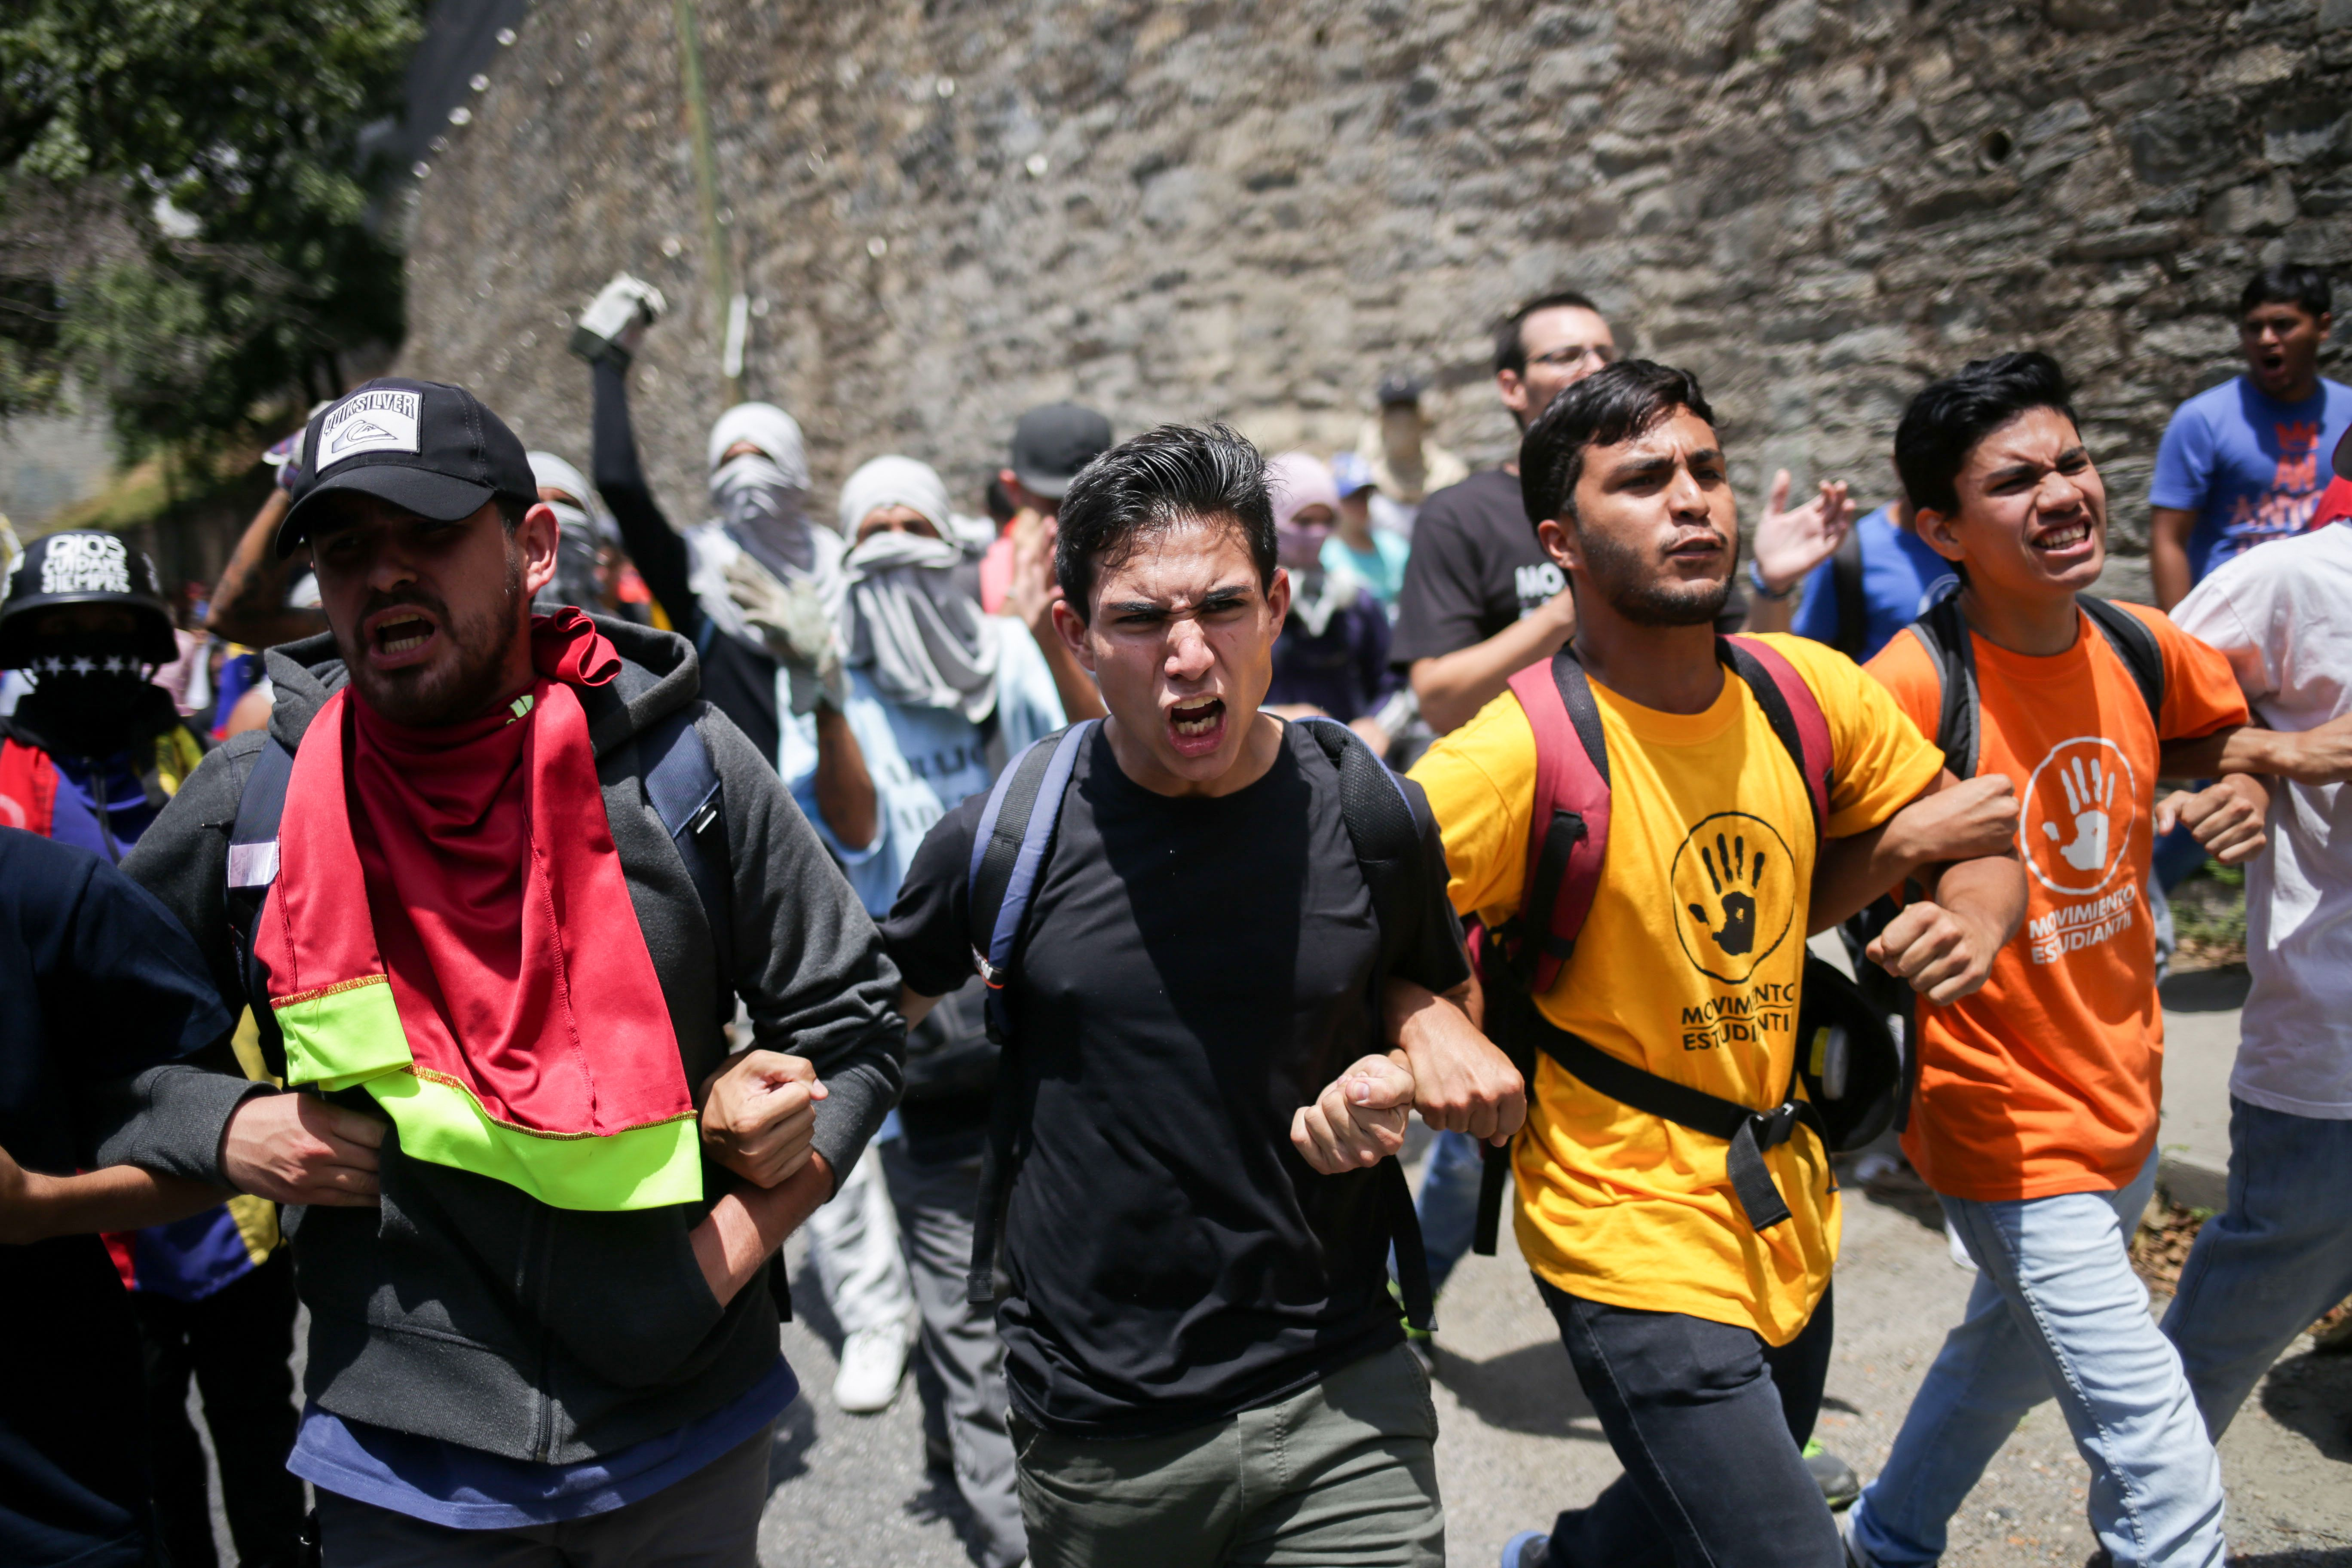 Supporters of Venezuelan opposition leader and self-proclaimed acting president Juan Guaido demonstrate in Caracas on March 9, 2019. - Venezuelan riot police blocked protesters on Saturday as thousands of people took to the streets amid rising tensions between opposition leader Juan Guaido and President Nicolas Maduro. (CRISTIAN HERNANDEZ/AFP via Getty Images)